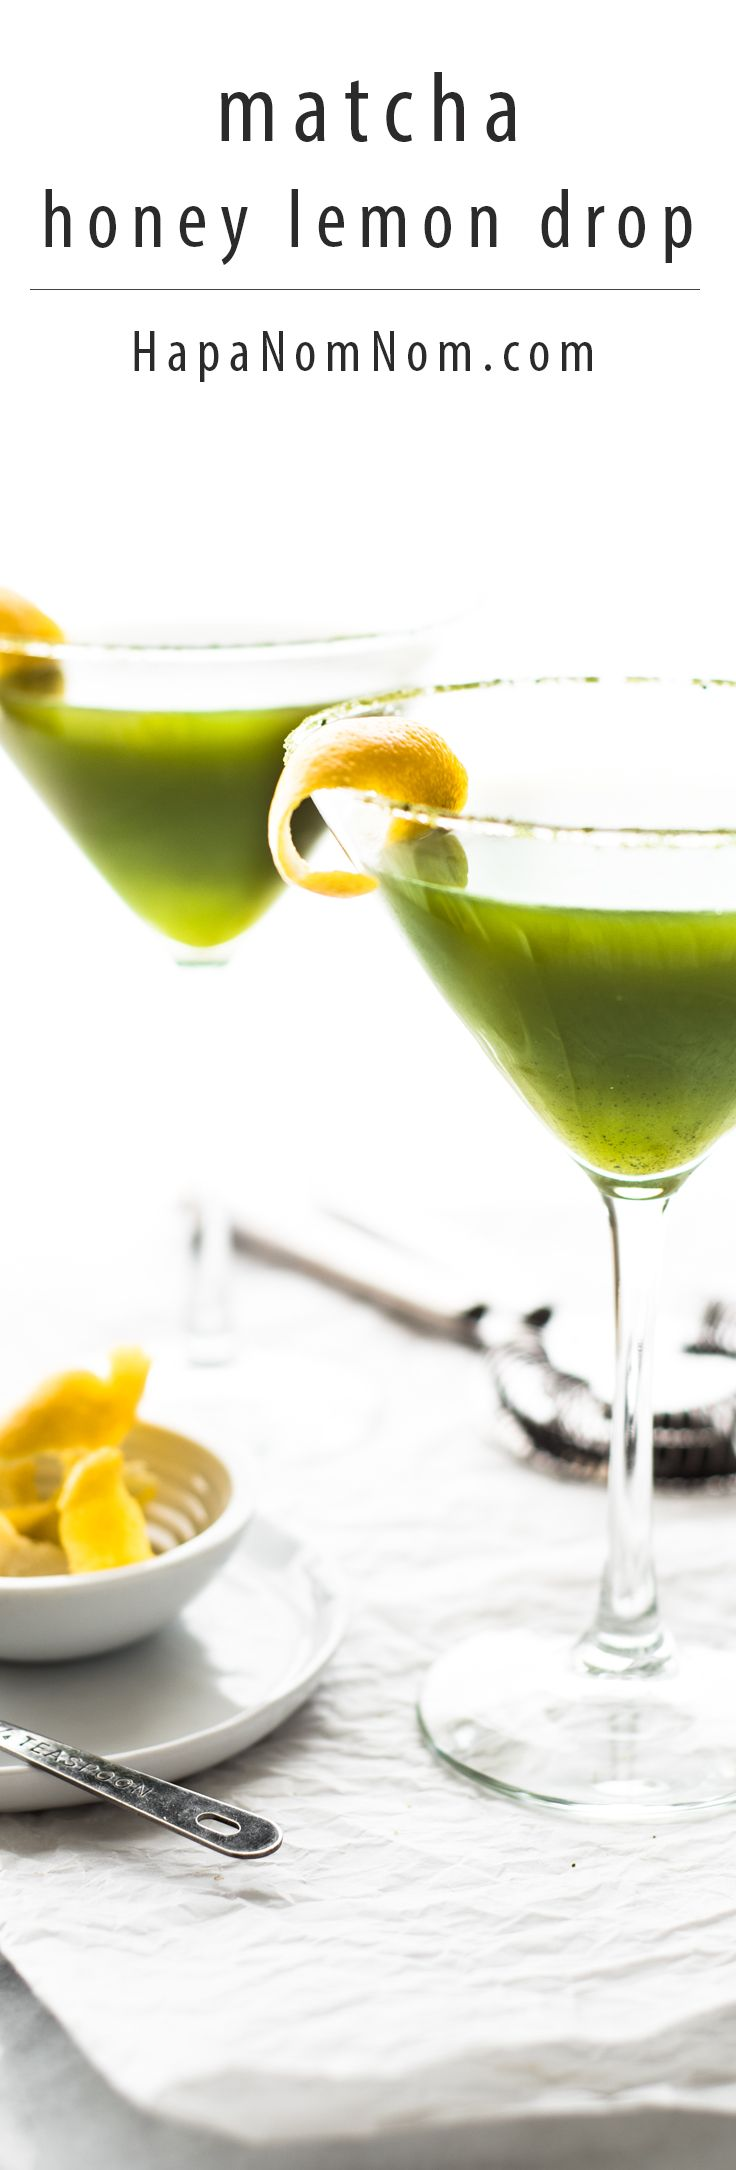 A Japanese twist on a lemon drop cocktail, the earthy-grassy matcha pairs beautifully with the sweet and sour qualities of honey and lemon.